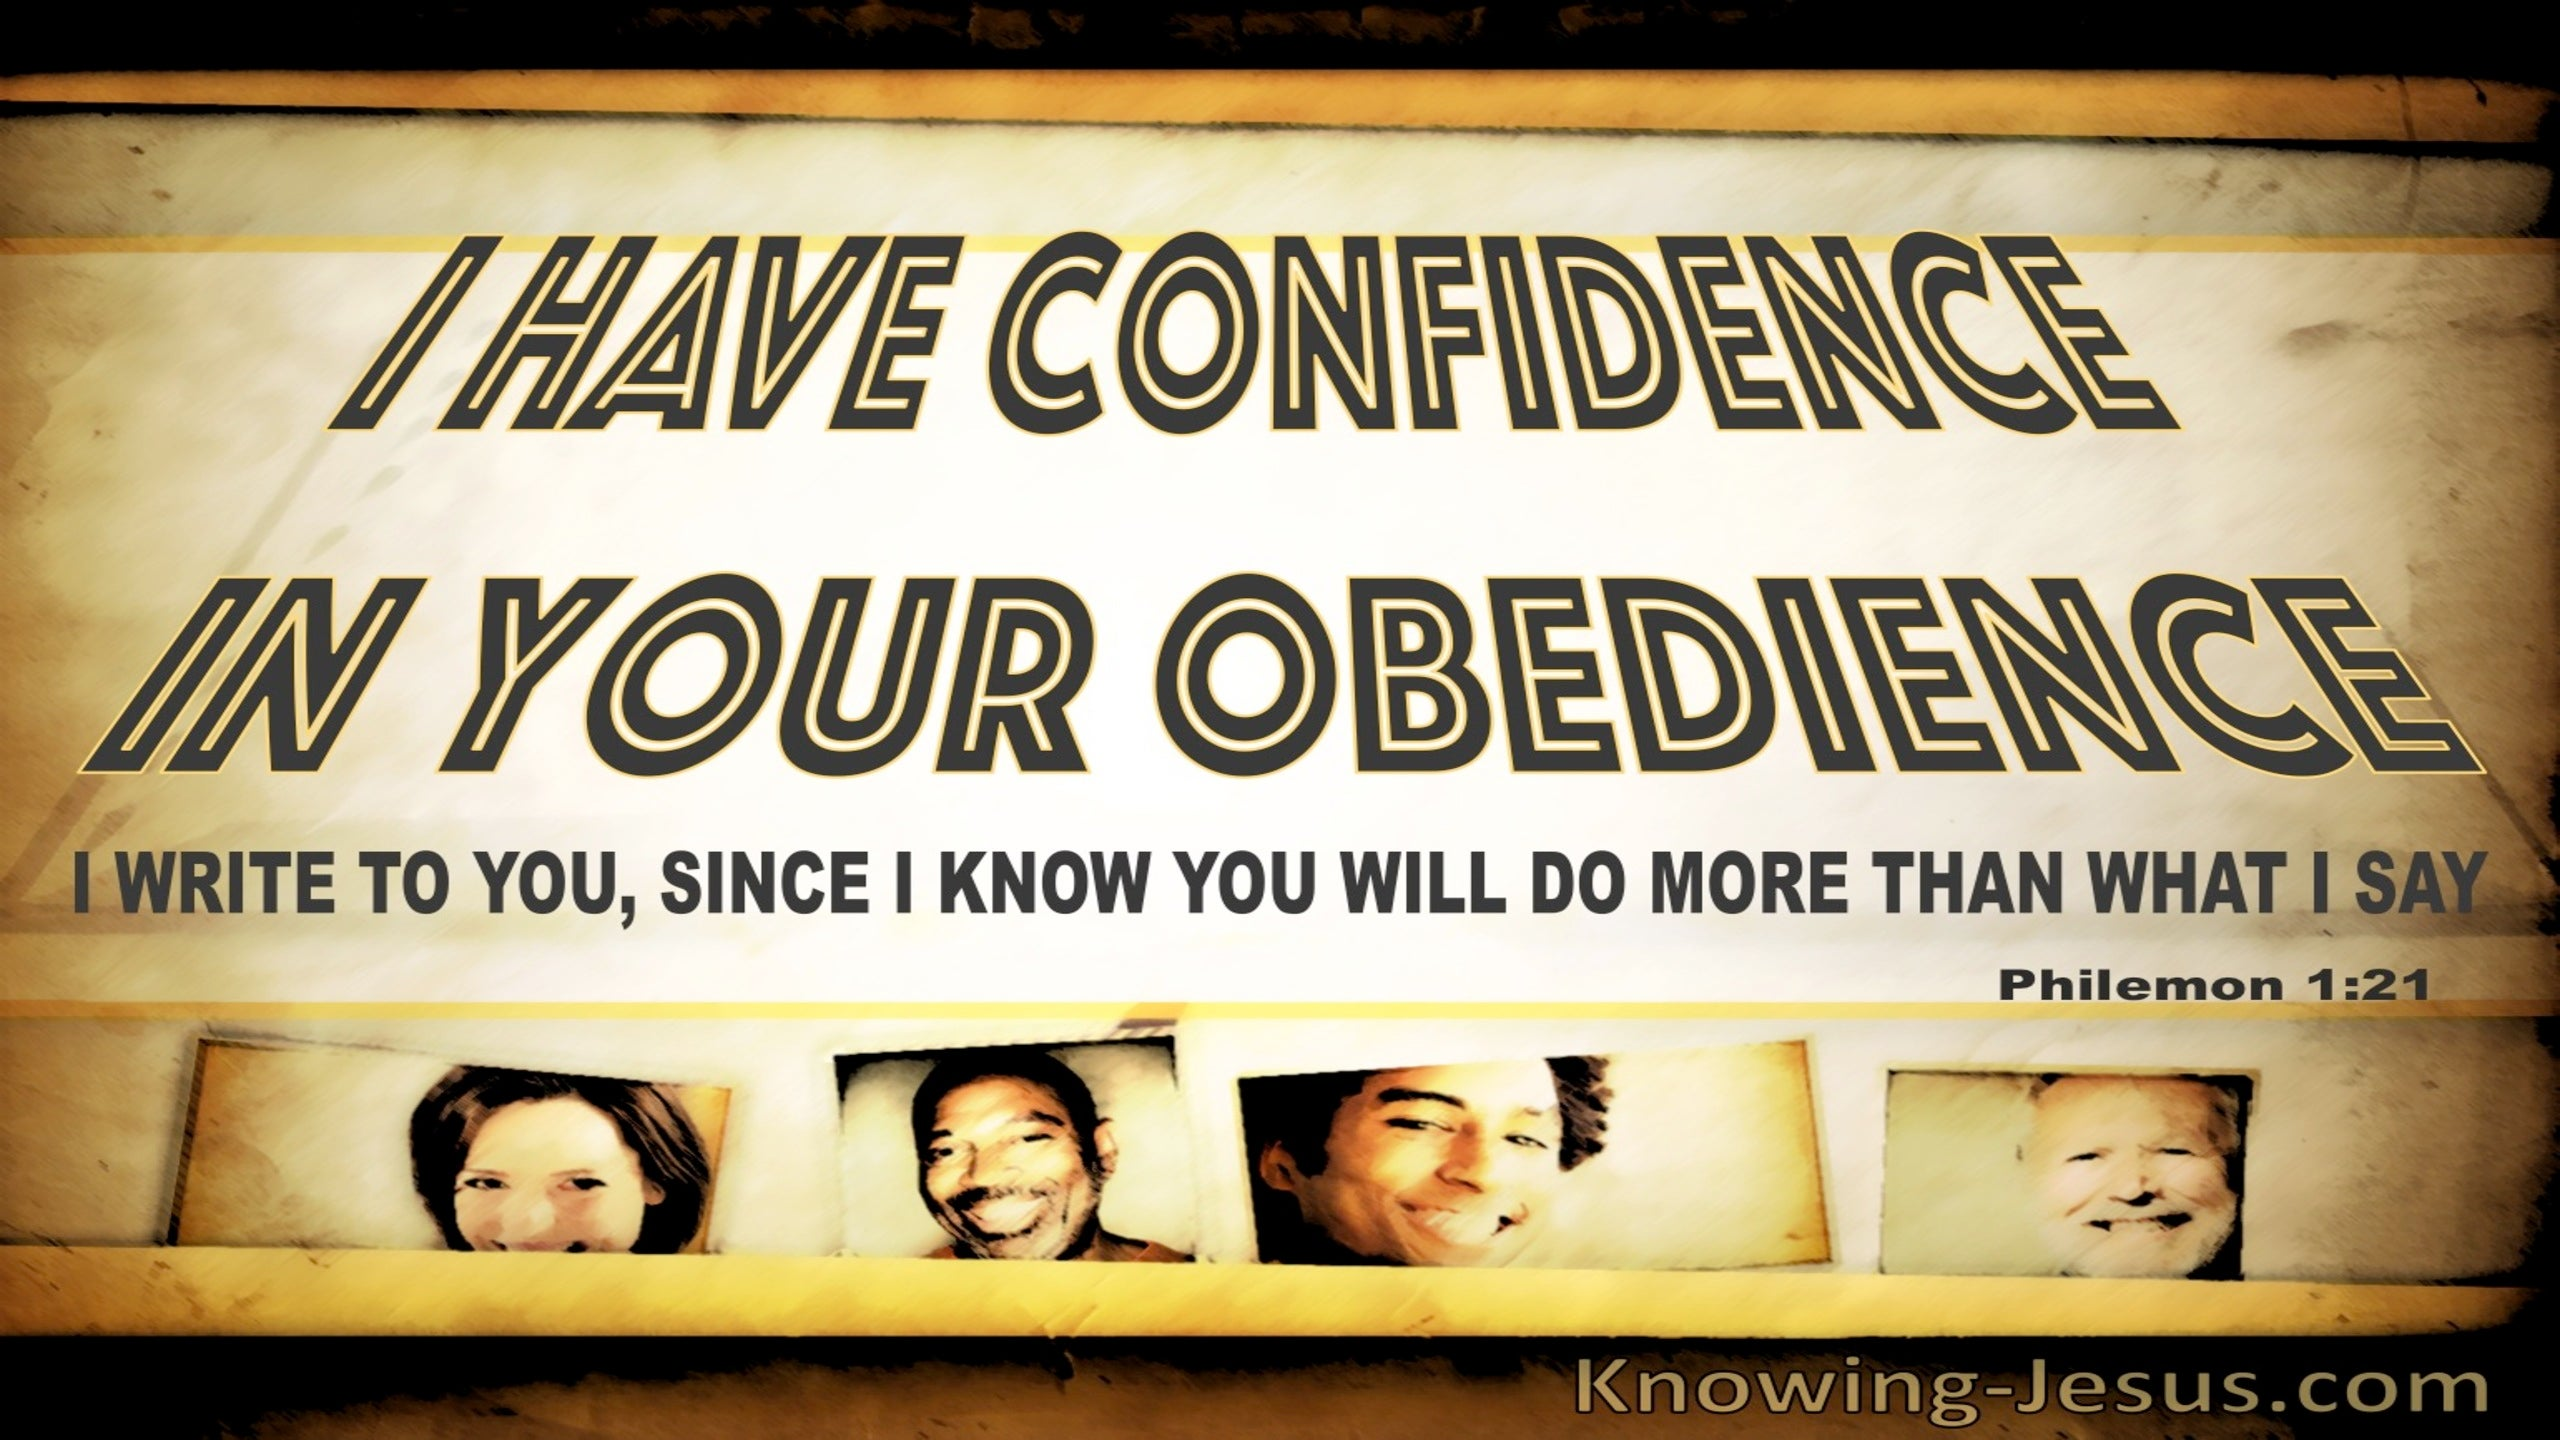 Philemon 1:21 Confidence In You Obedience (yellow)